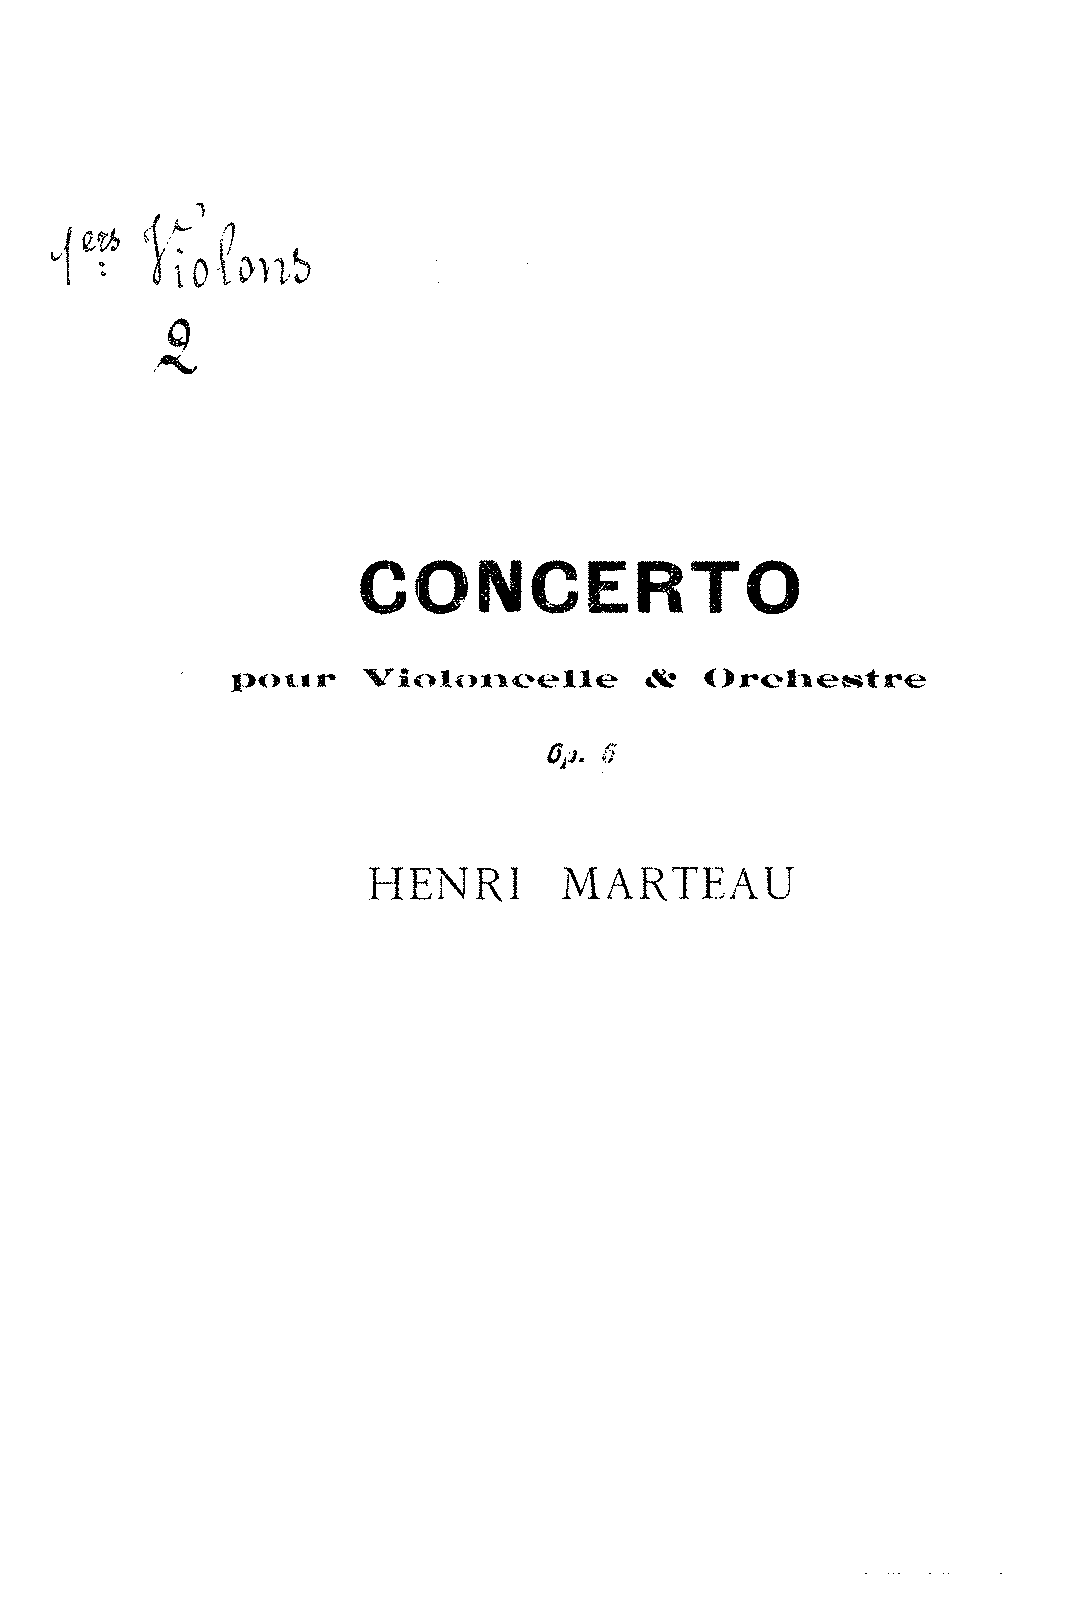 PMLP366274-Marteau - Cello Concerto ms 1904 part violins1.pdf